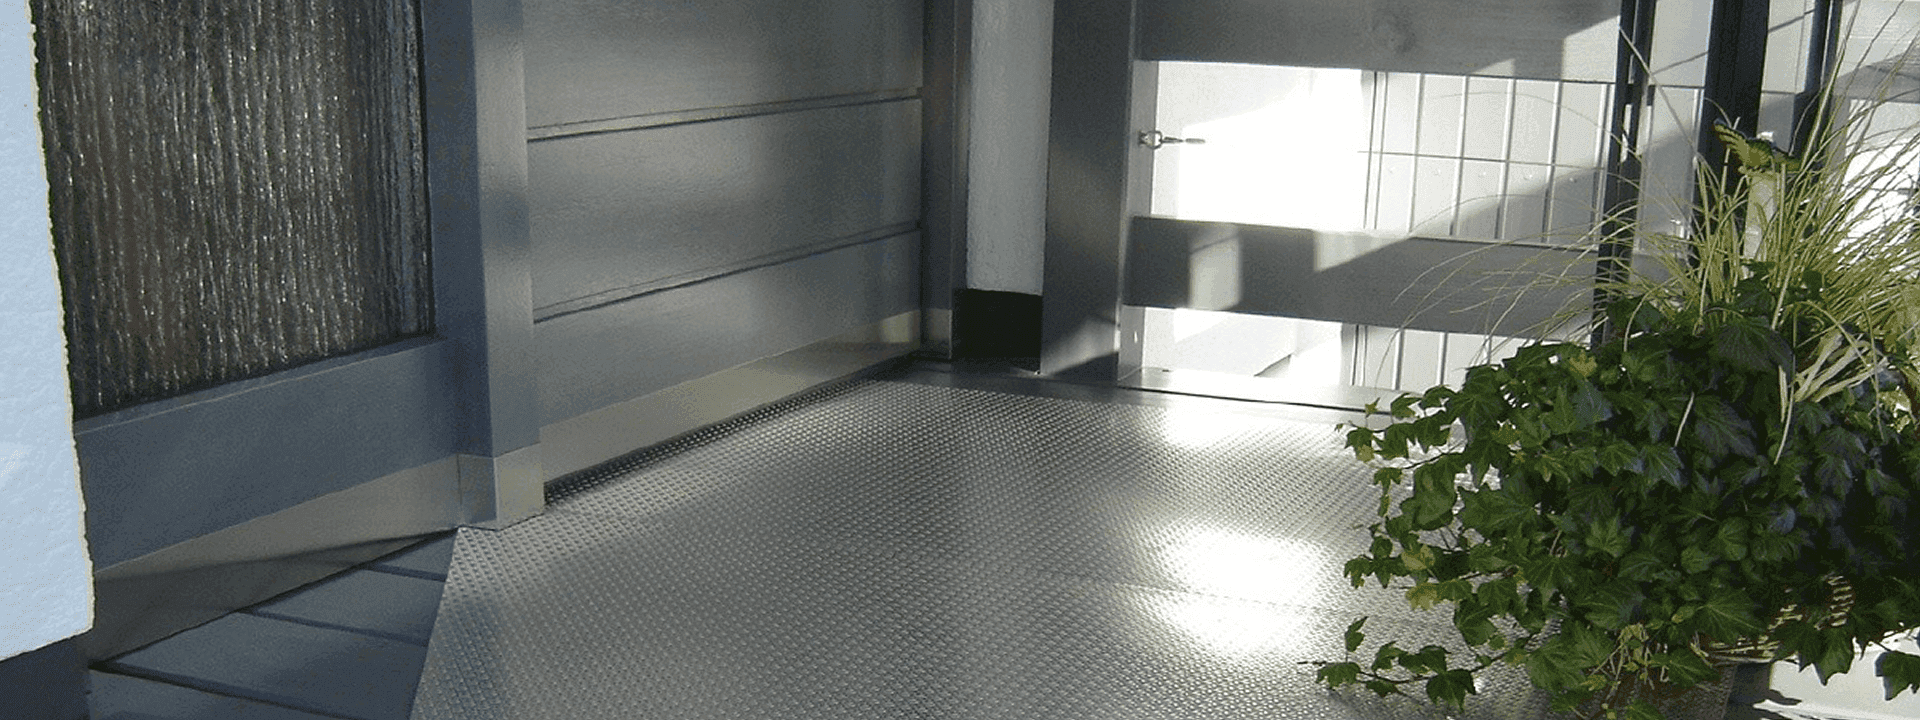 high strength alloy steel hot-rolled checker plates for flooring of a large room, and a large pot of green plants on the ground.